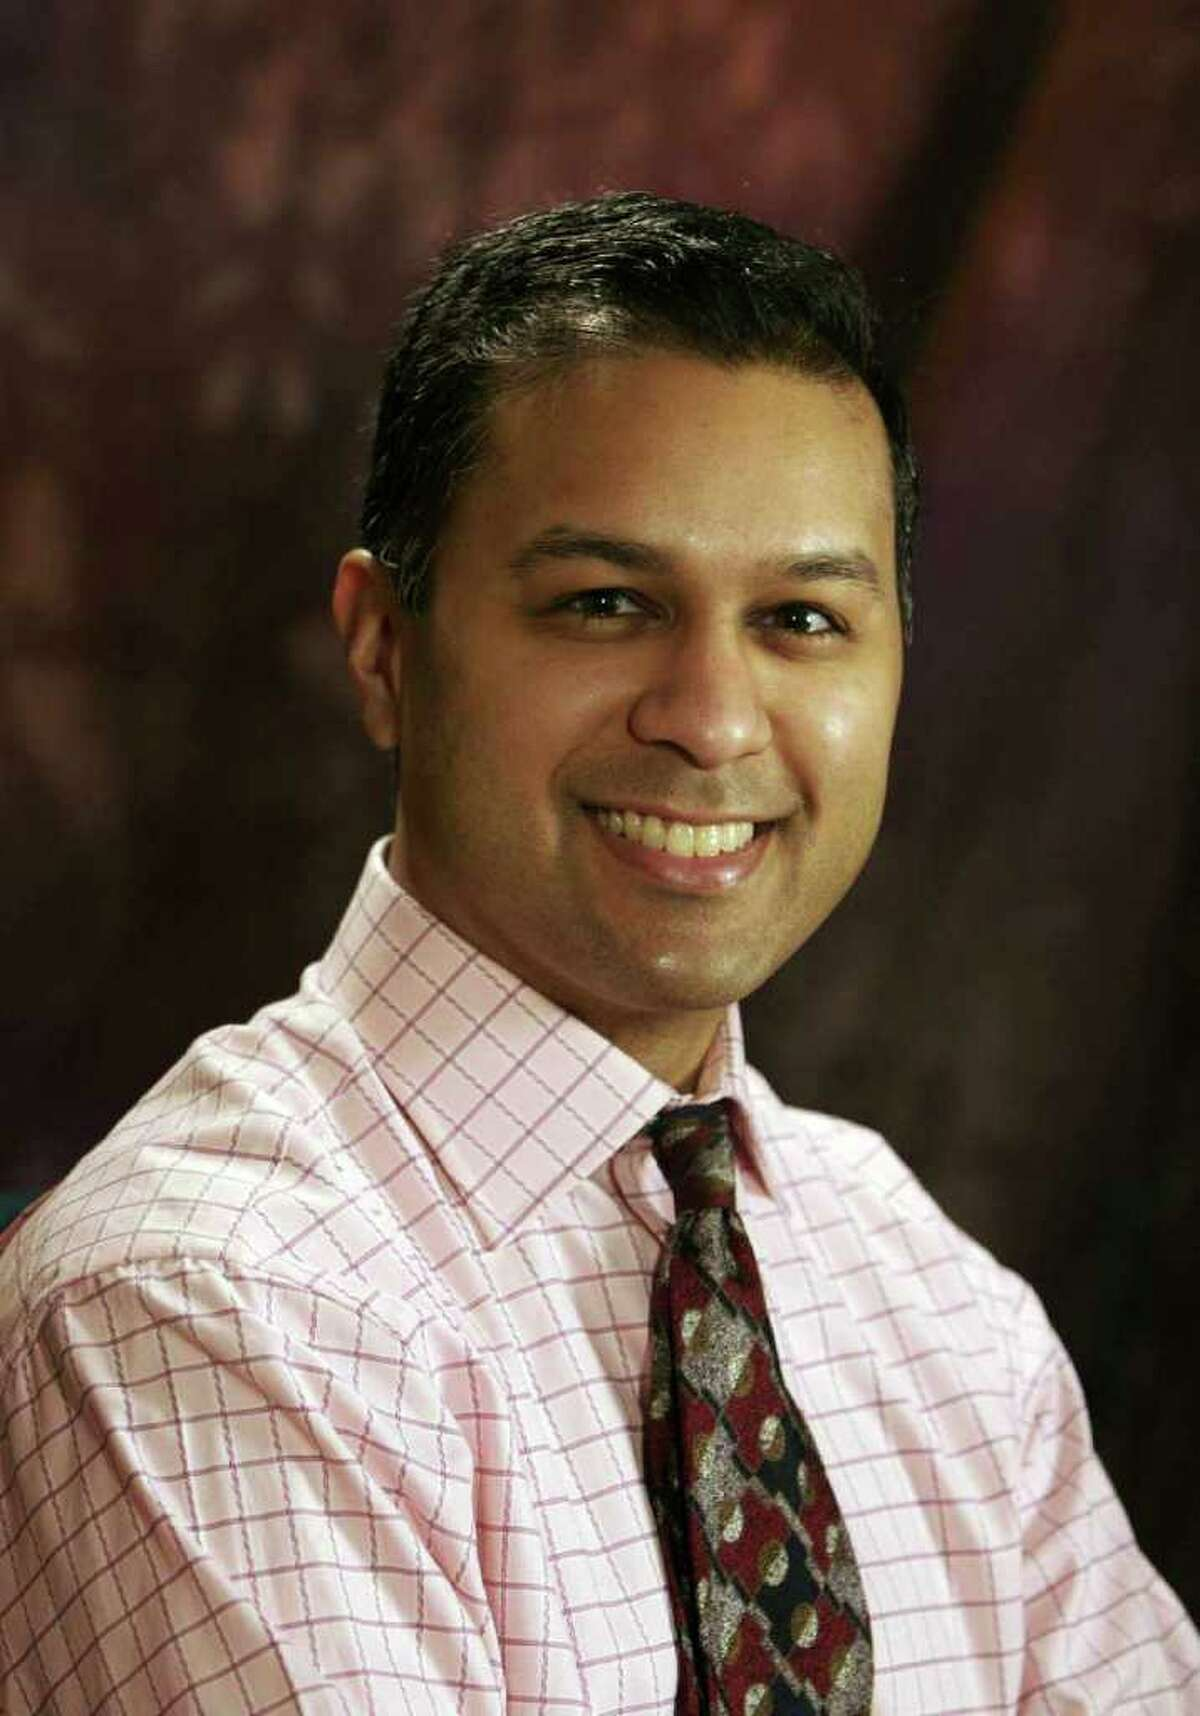 Dr. Nirav Shah, Andrew Cuomo's nominee for state health commissioner. (photo provided)